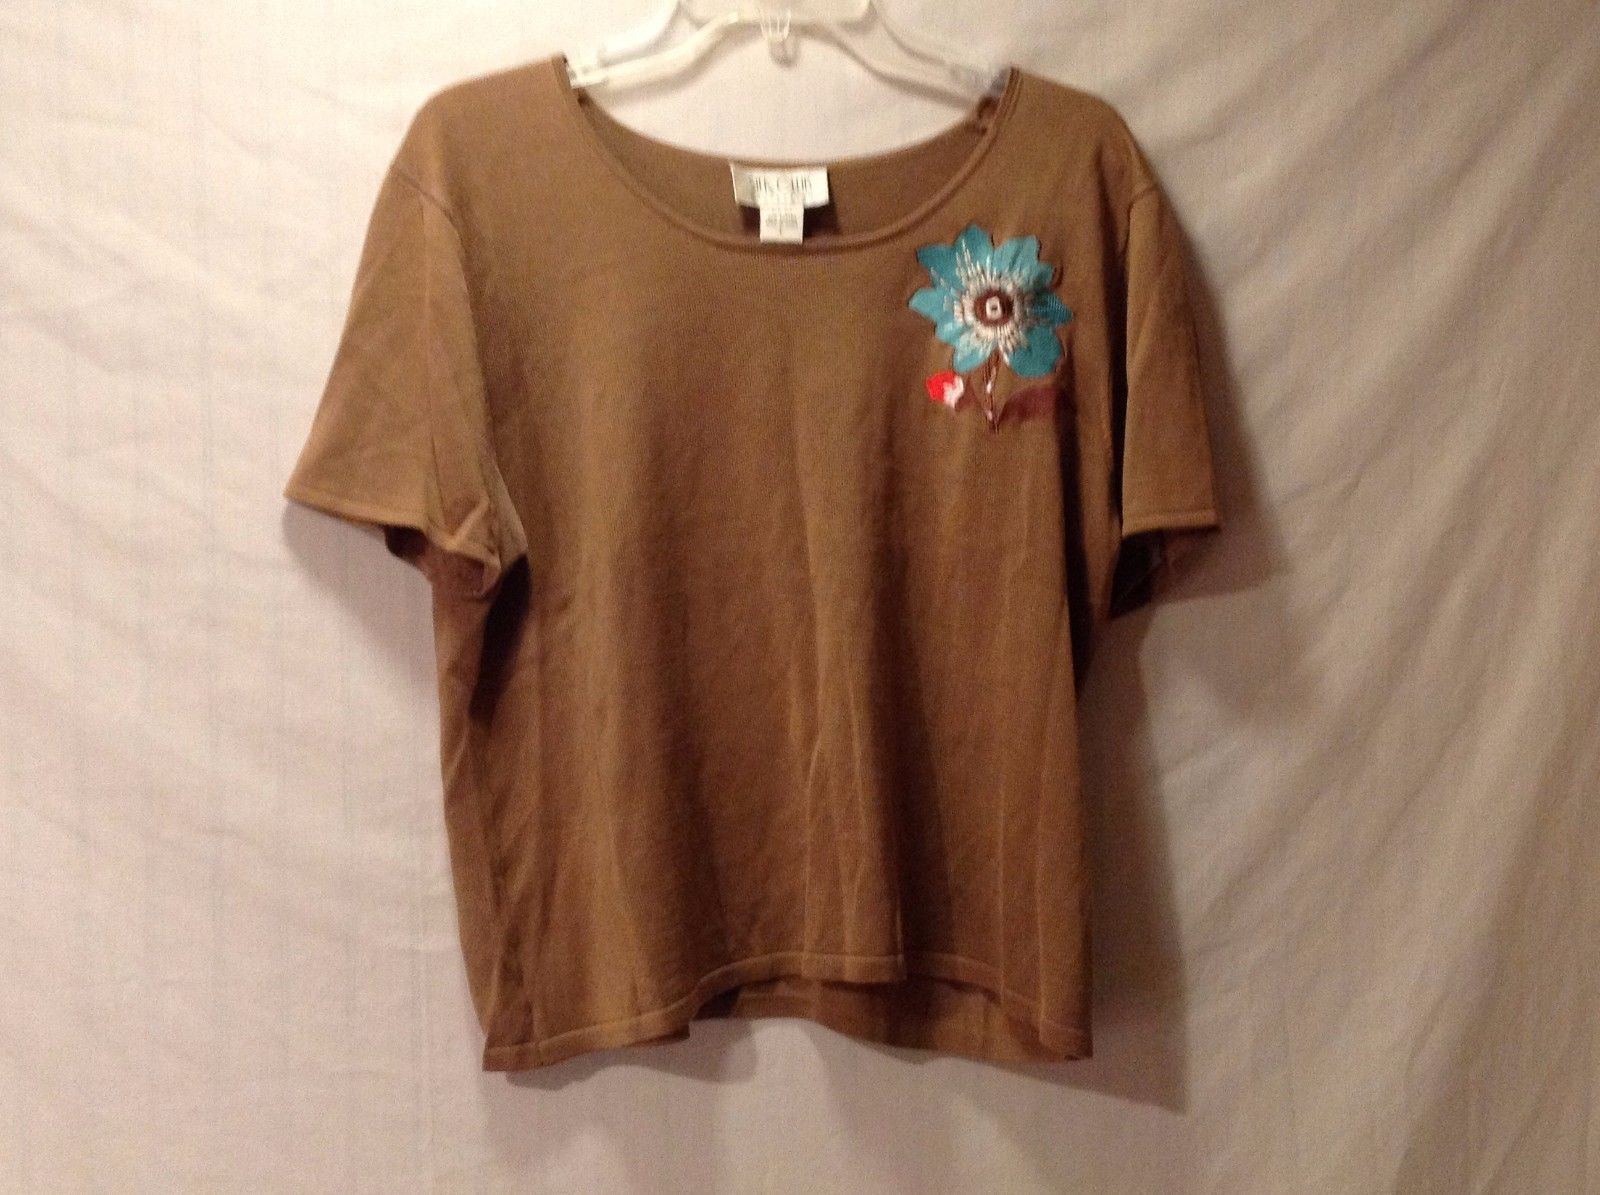 Excellent condition Women's large Silk Club lightweight sweater top brown/tan